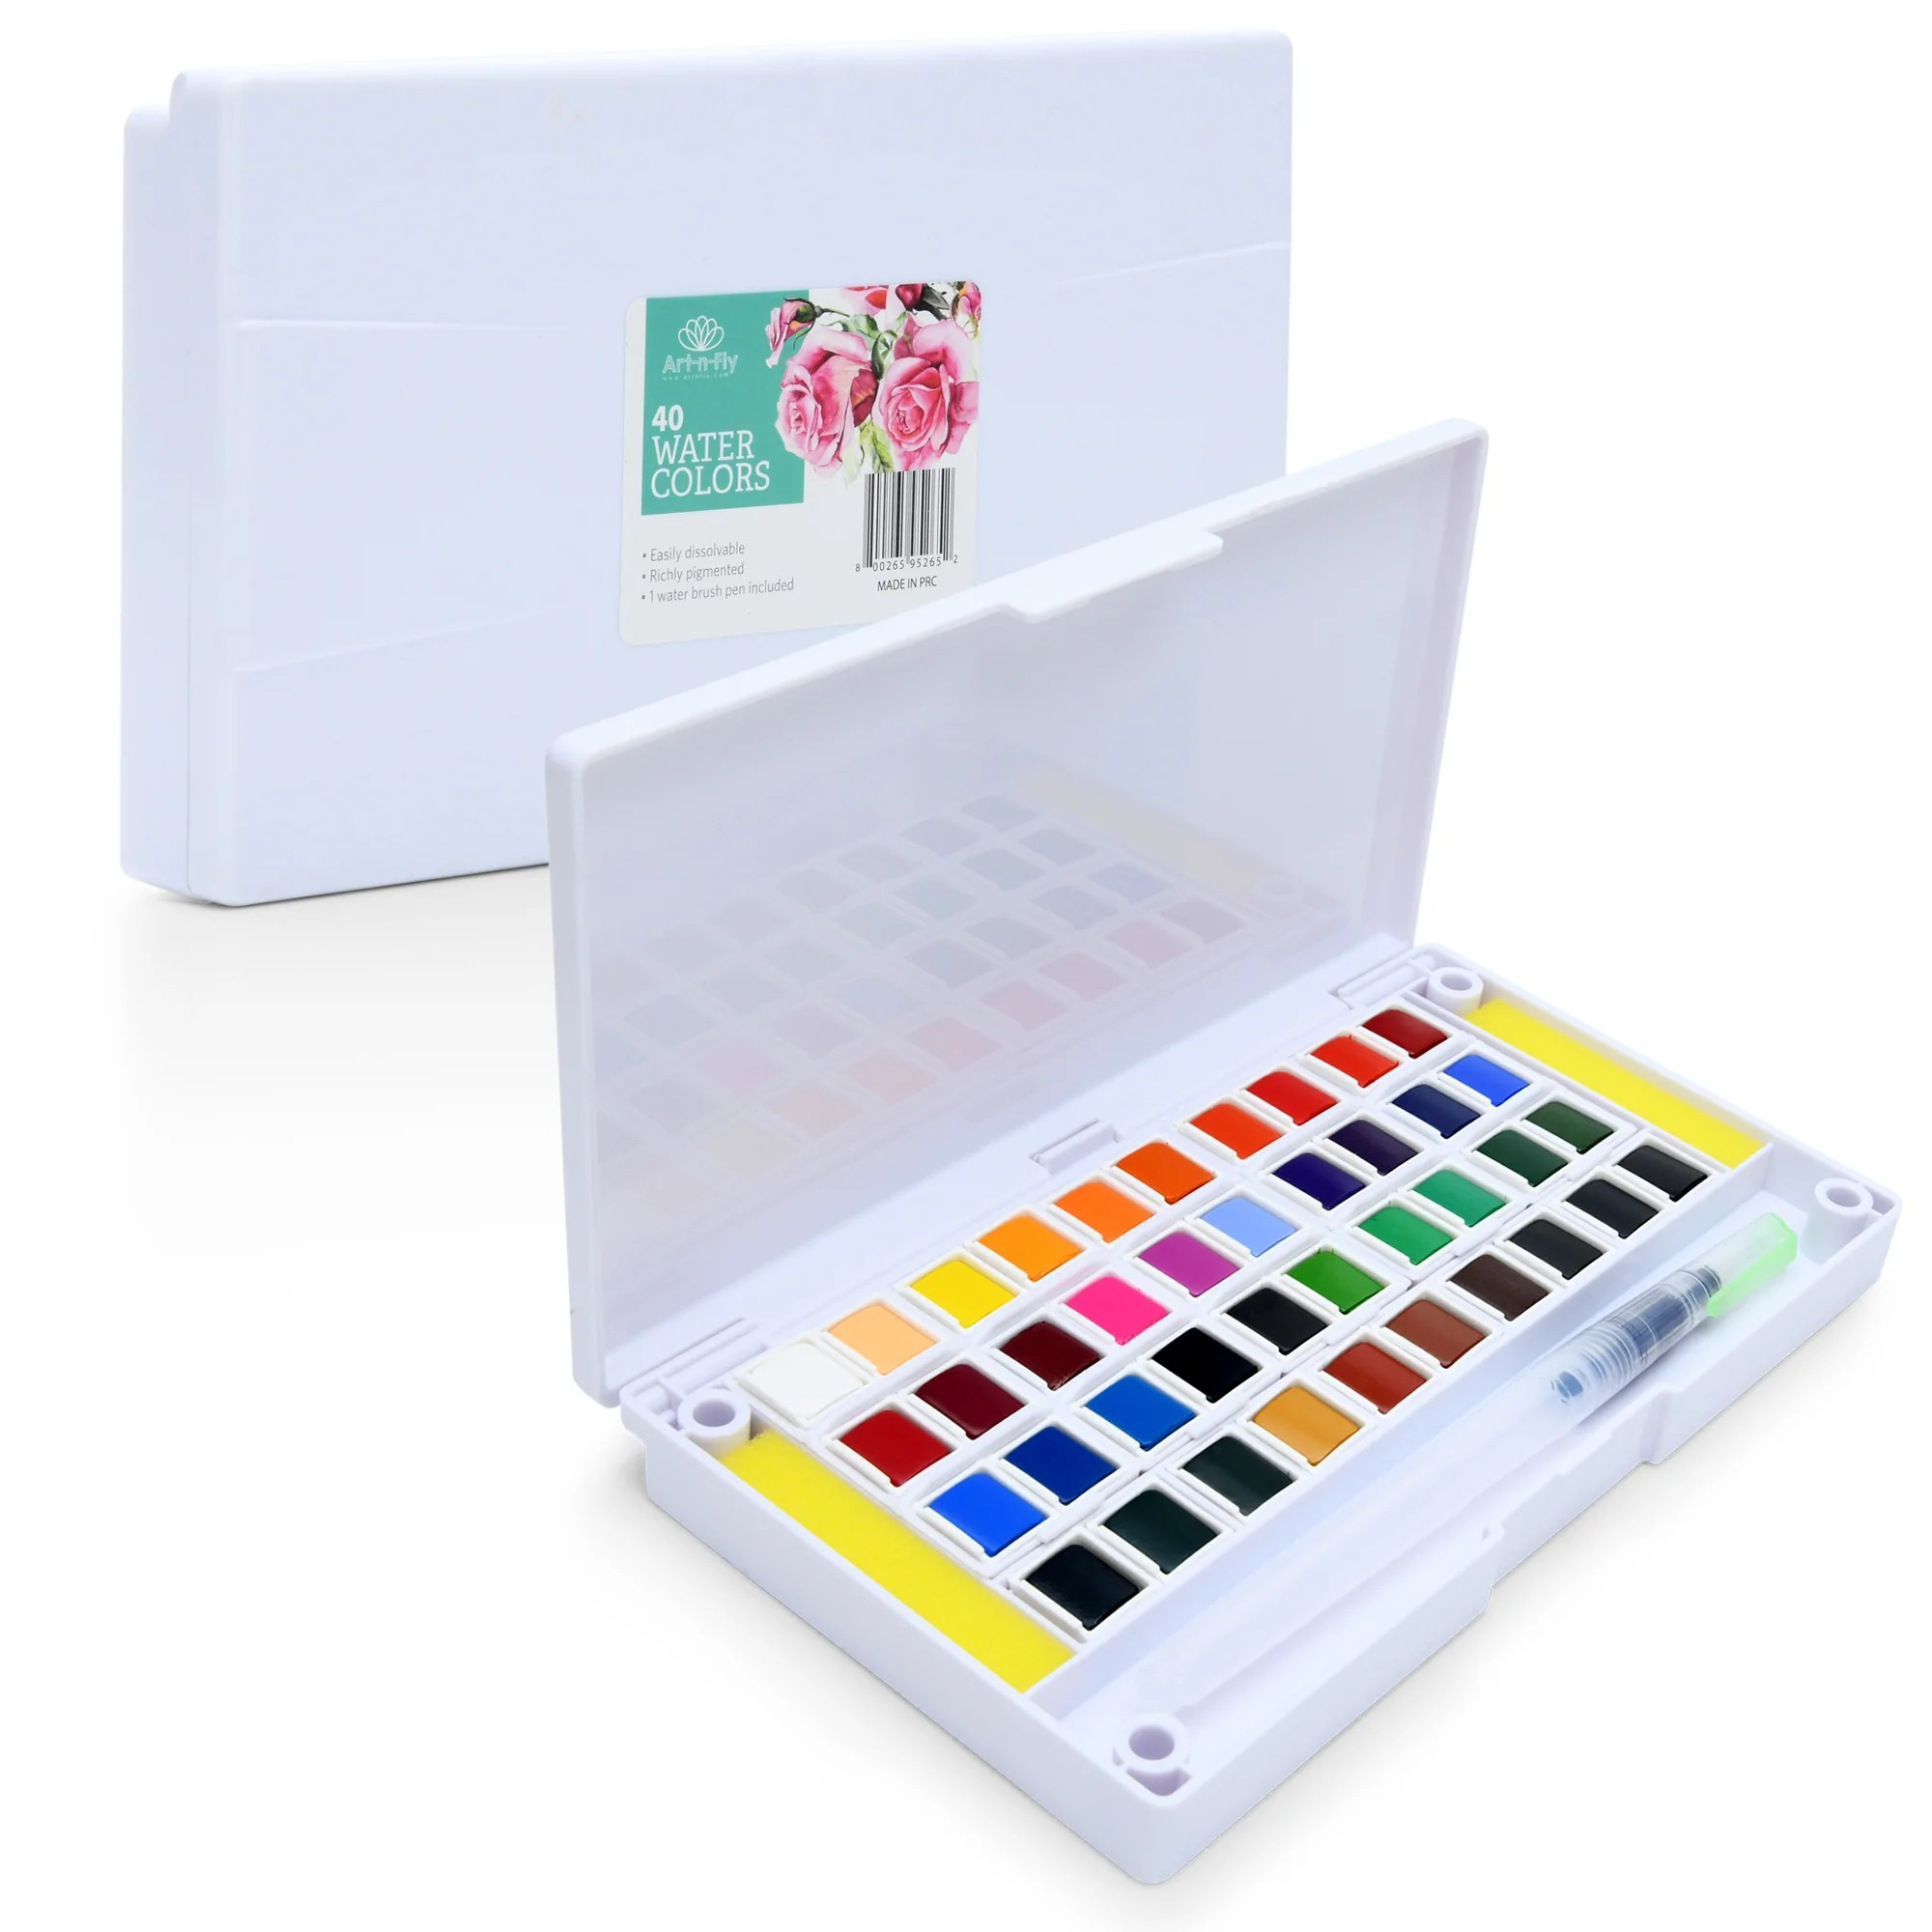 Colored Water Brush 40 Watercolor Set Includes Water Brush Sponges And Mixing Palette